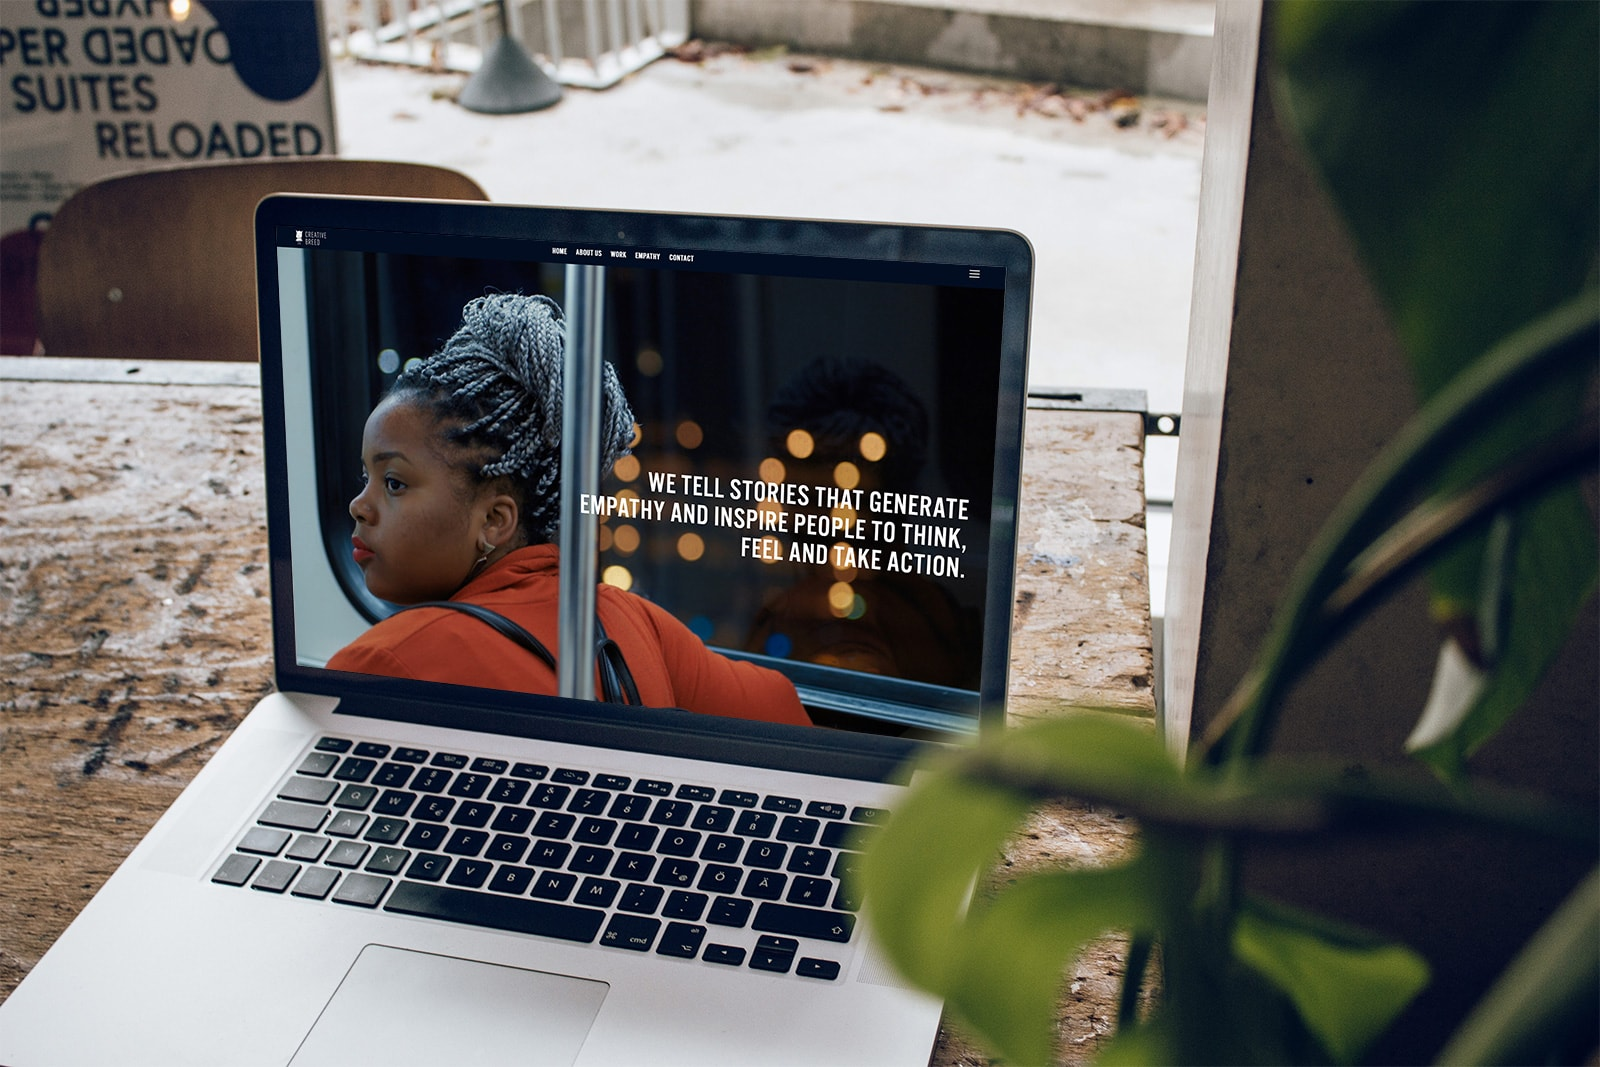 A creative studio specialized in website design & development helping businesses connect with their ideal audiences through meaningful design. -